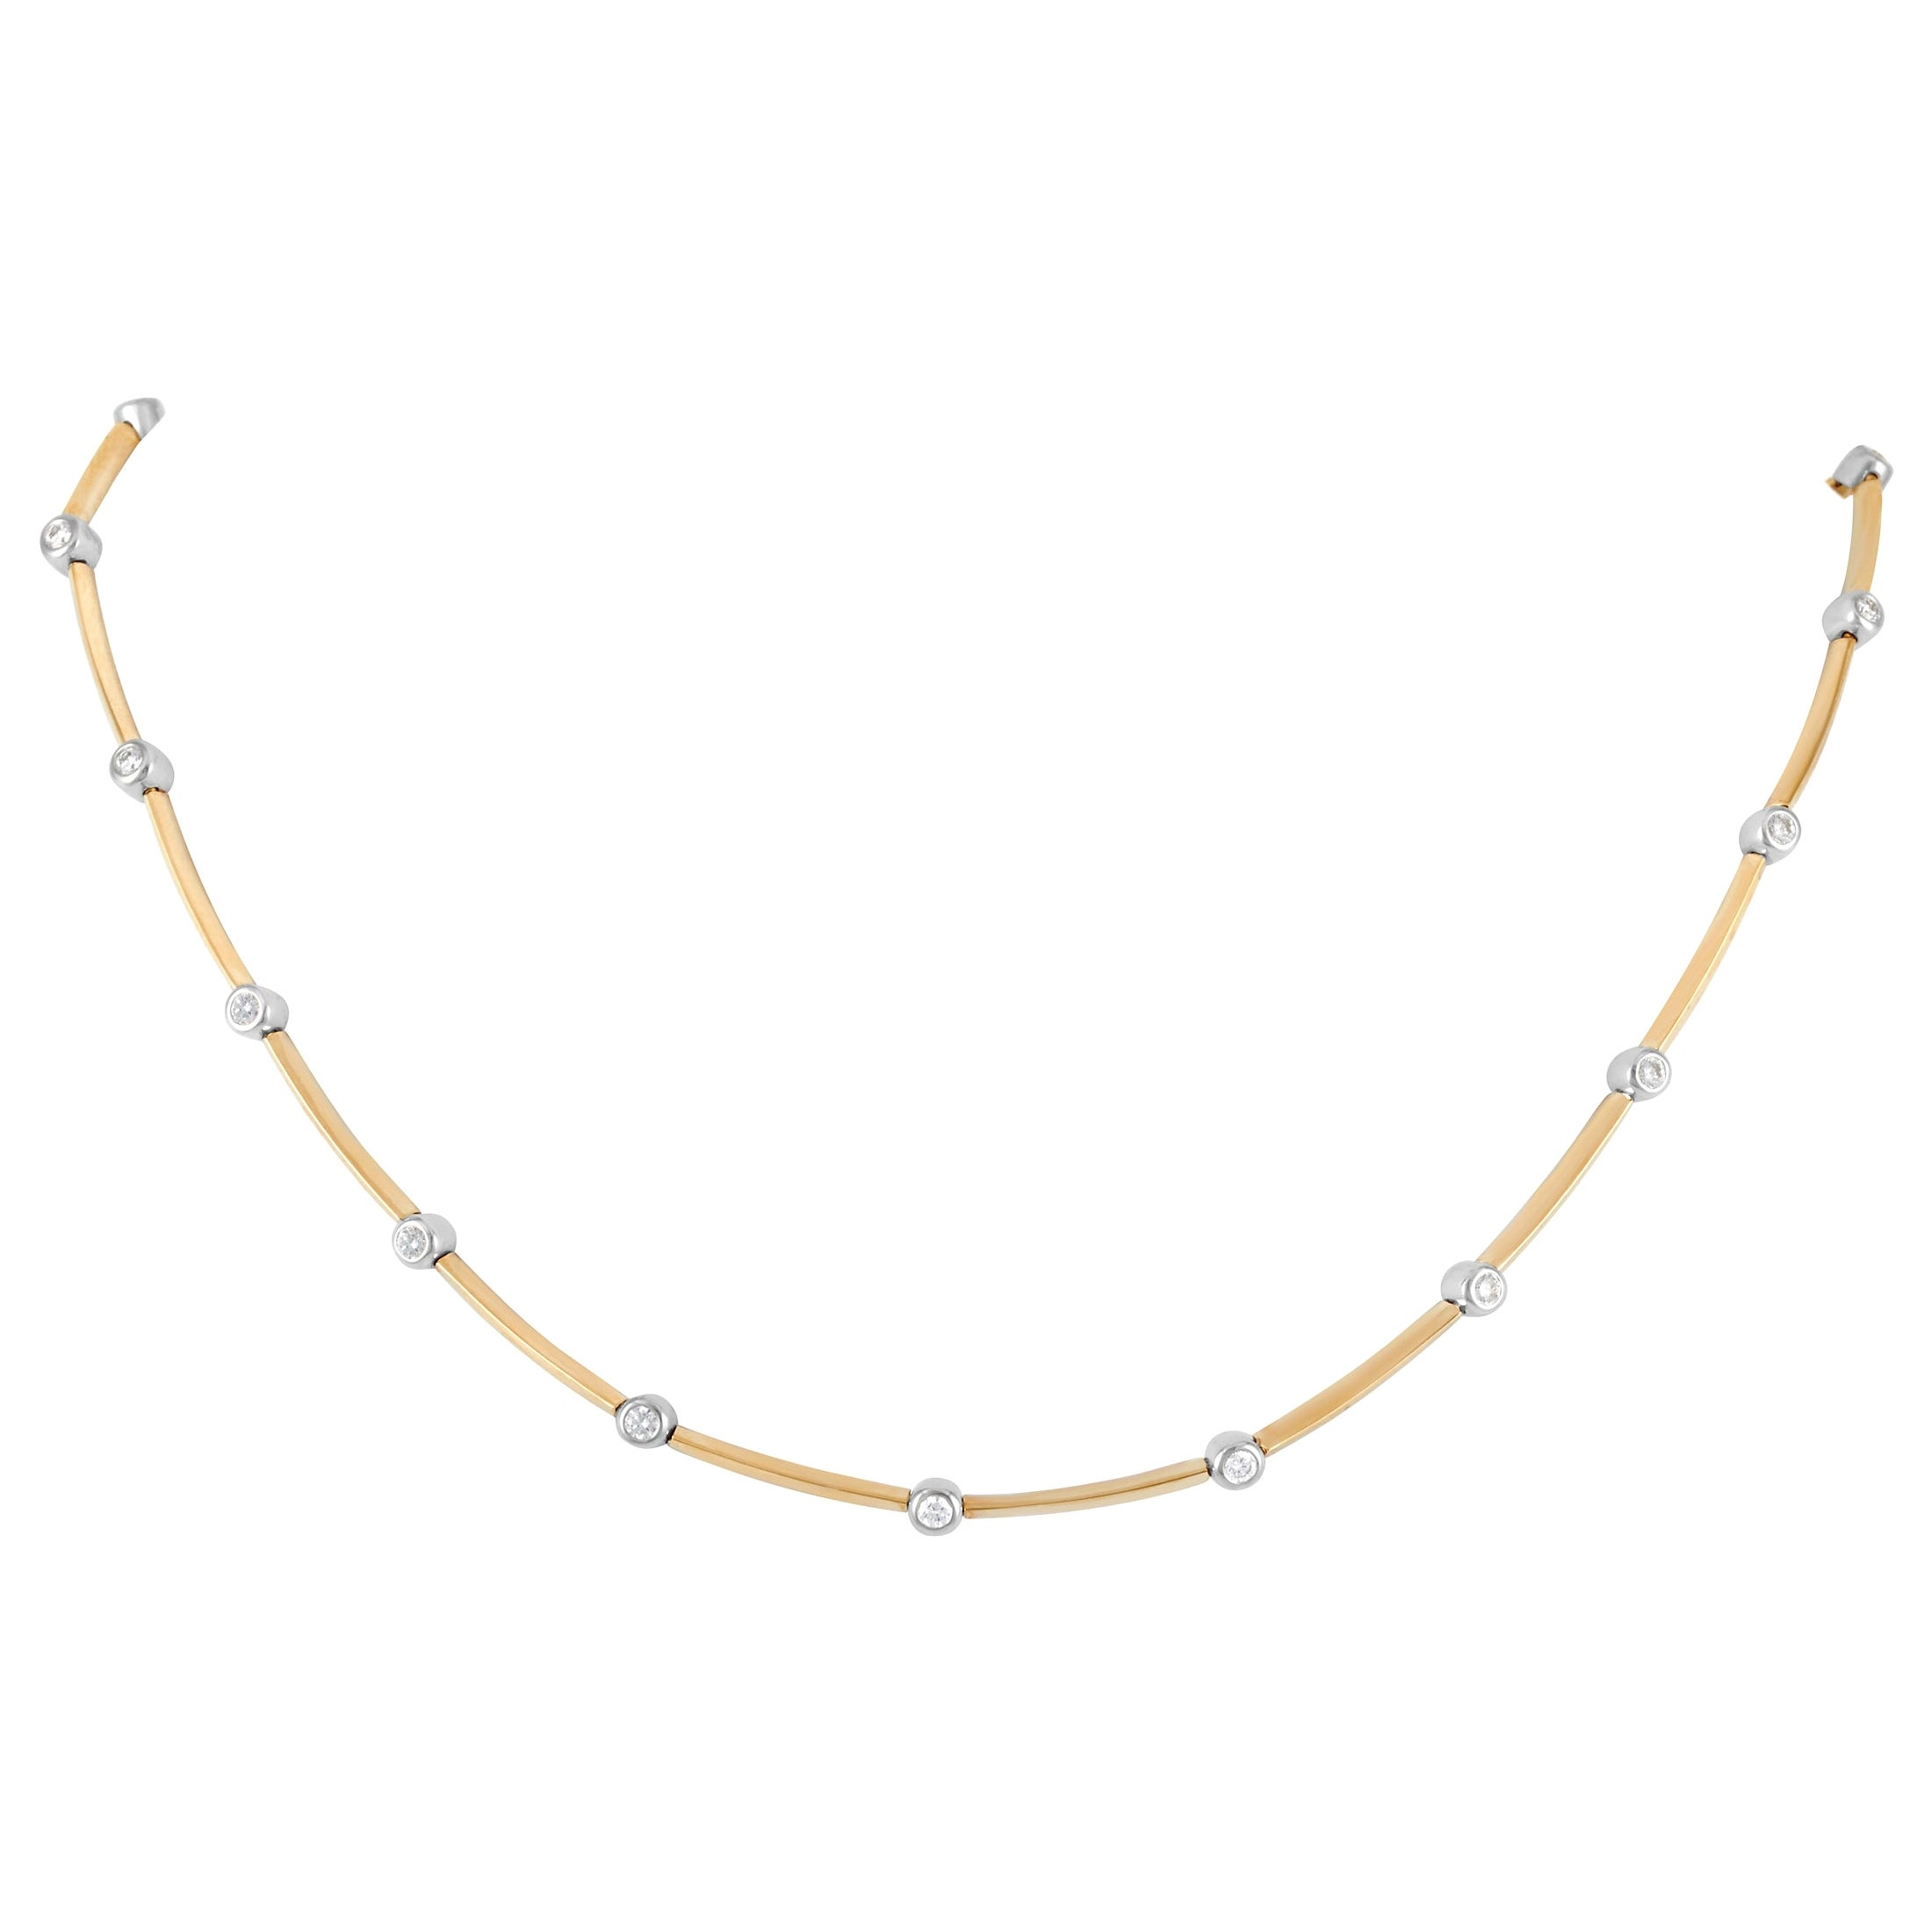 Tiffany & Co. 18 Karat Yellow Gold 1.00 Carat Diamond Necklace